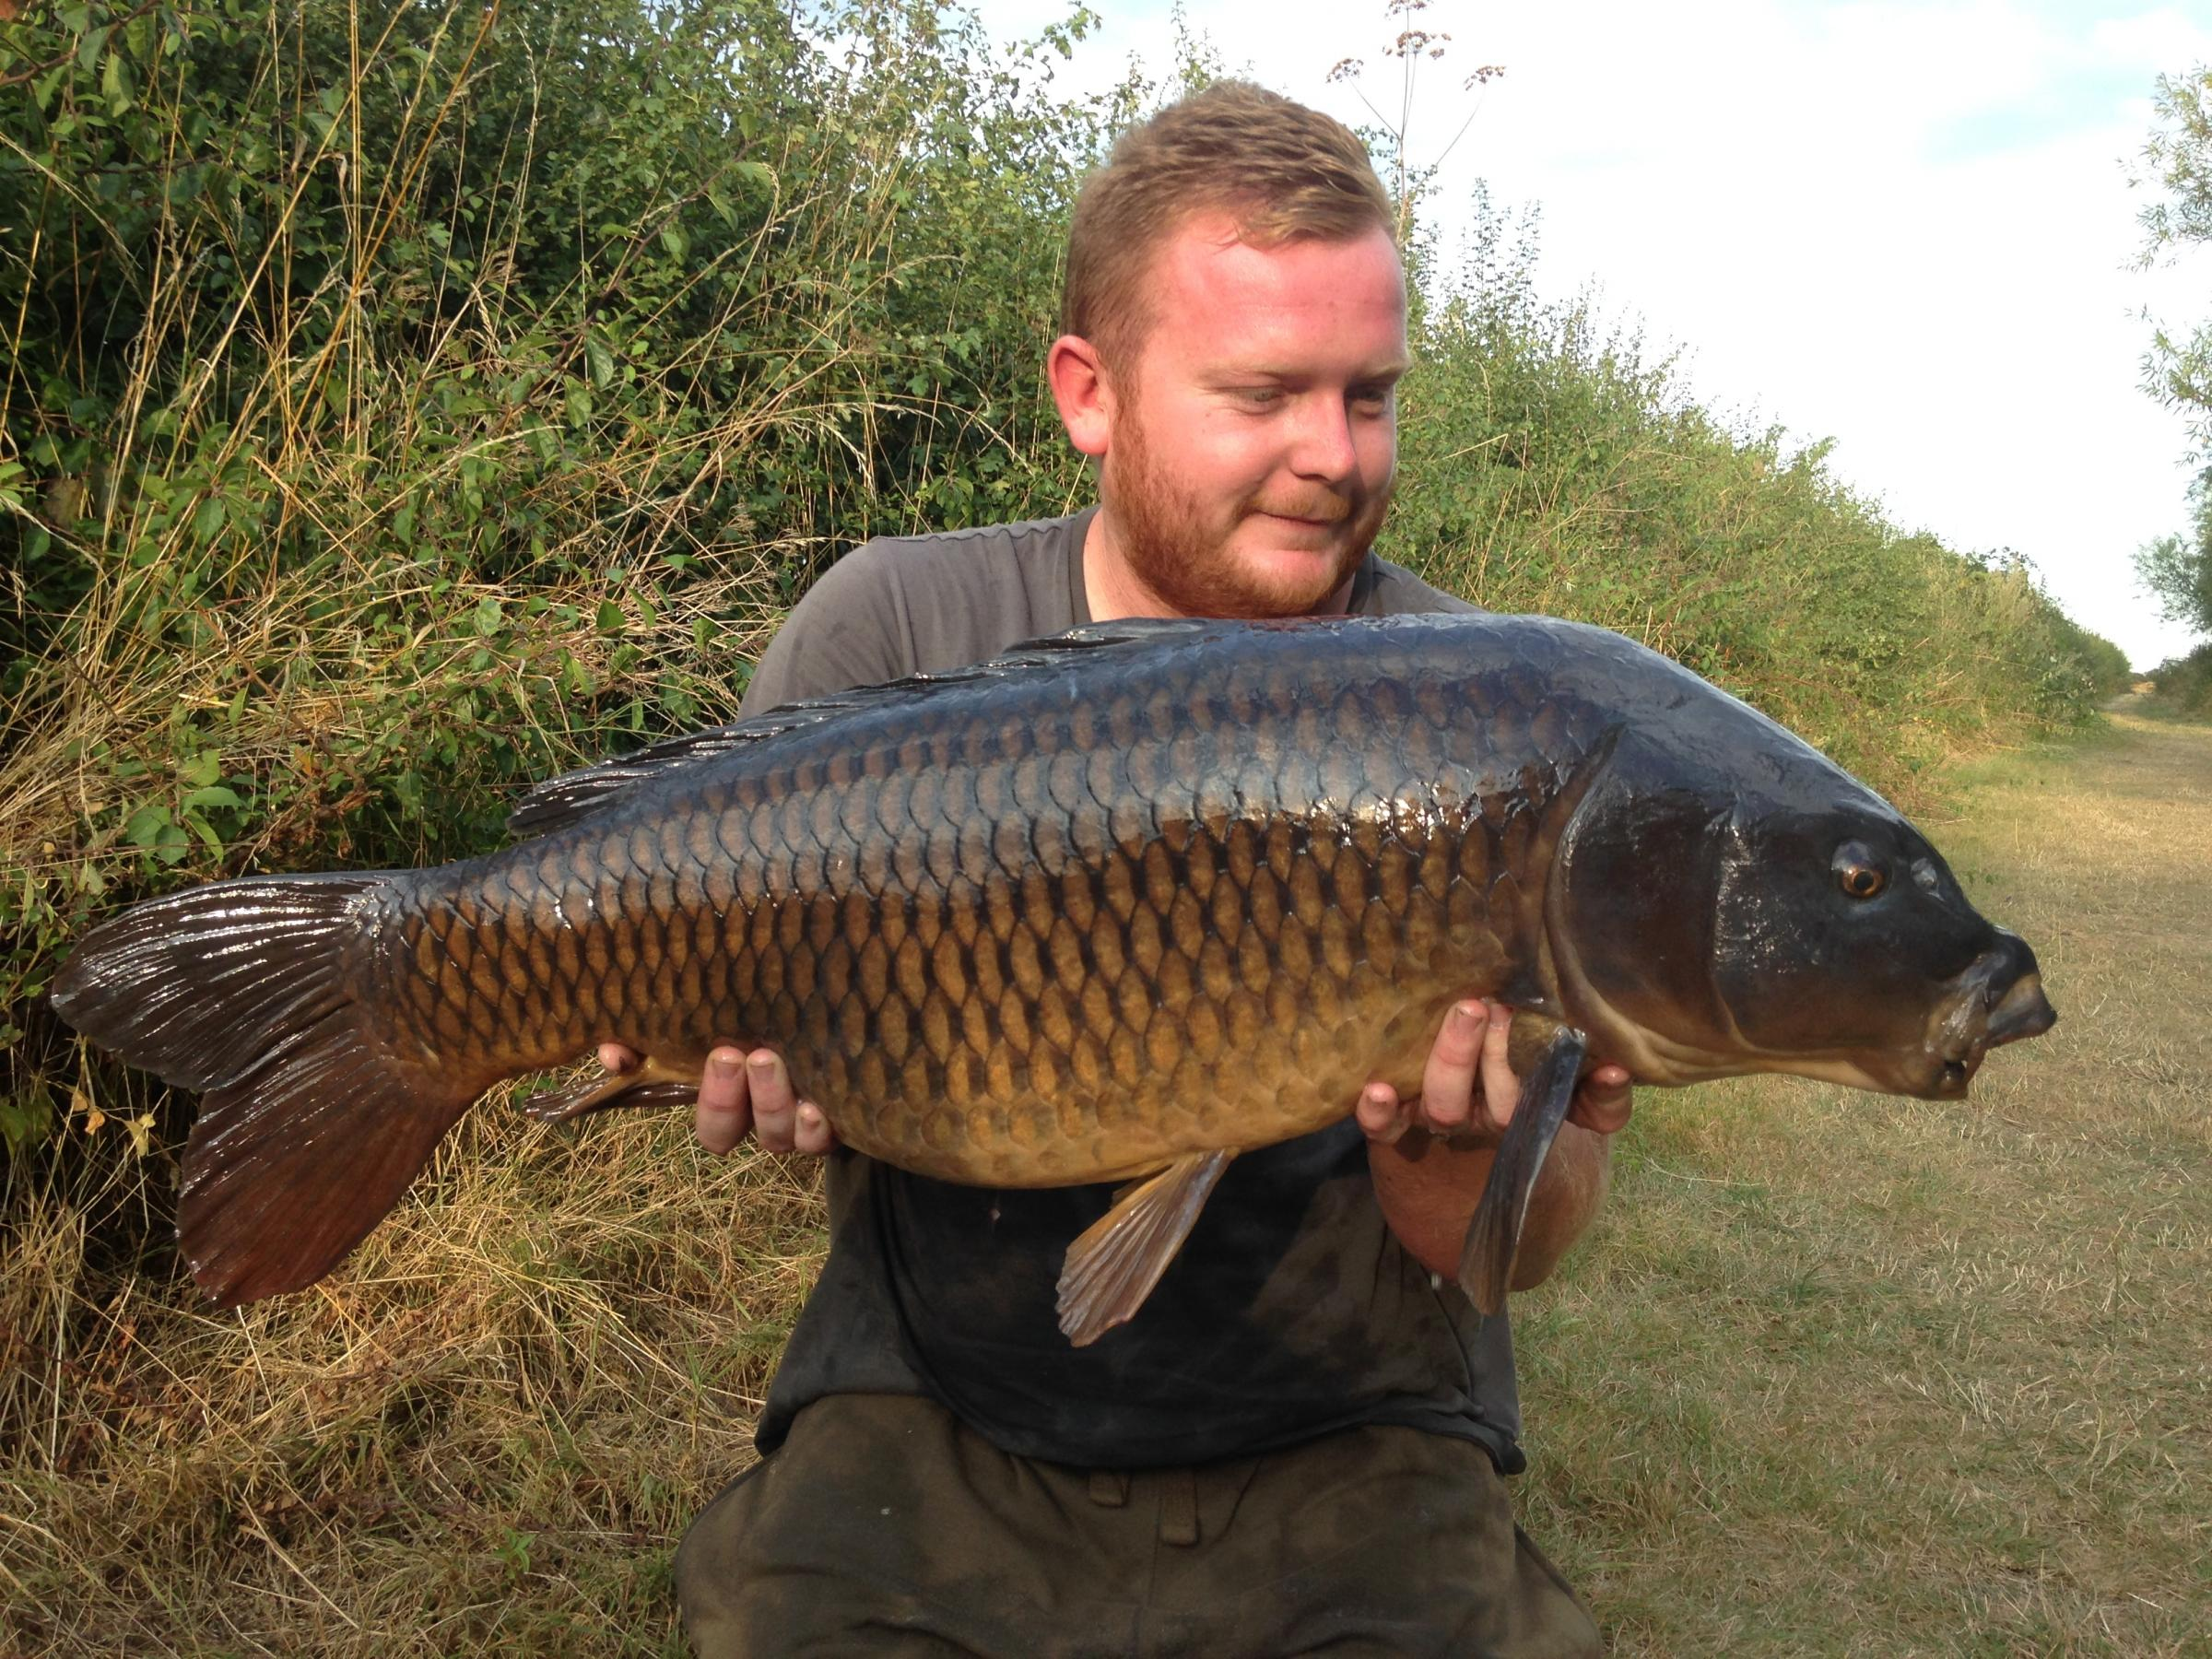 Big boy - Charlie Ridpath shows off this majestic common